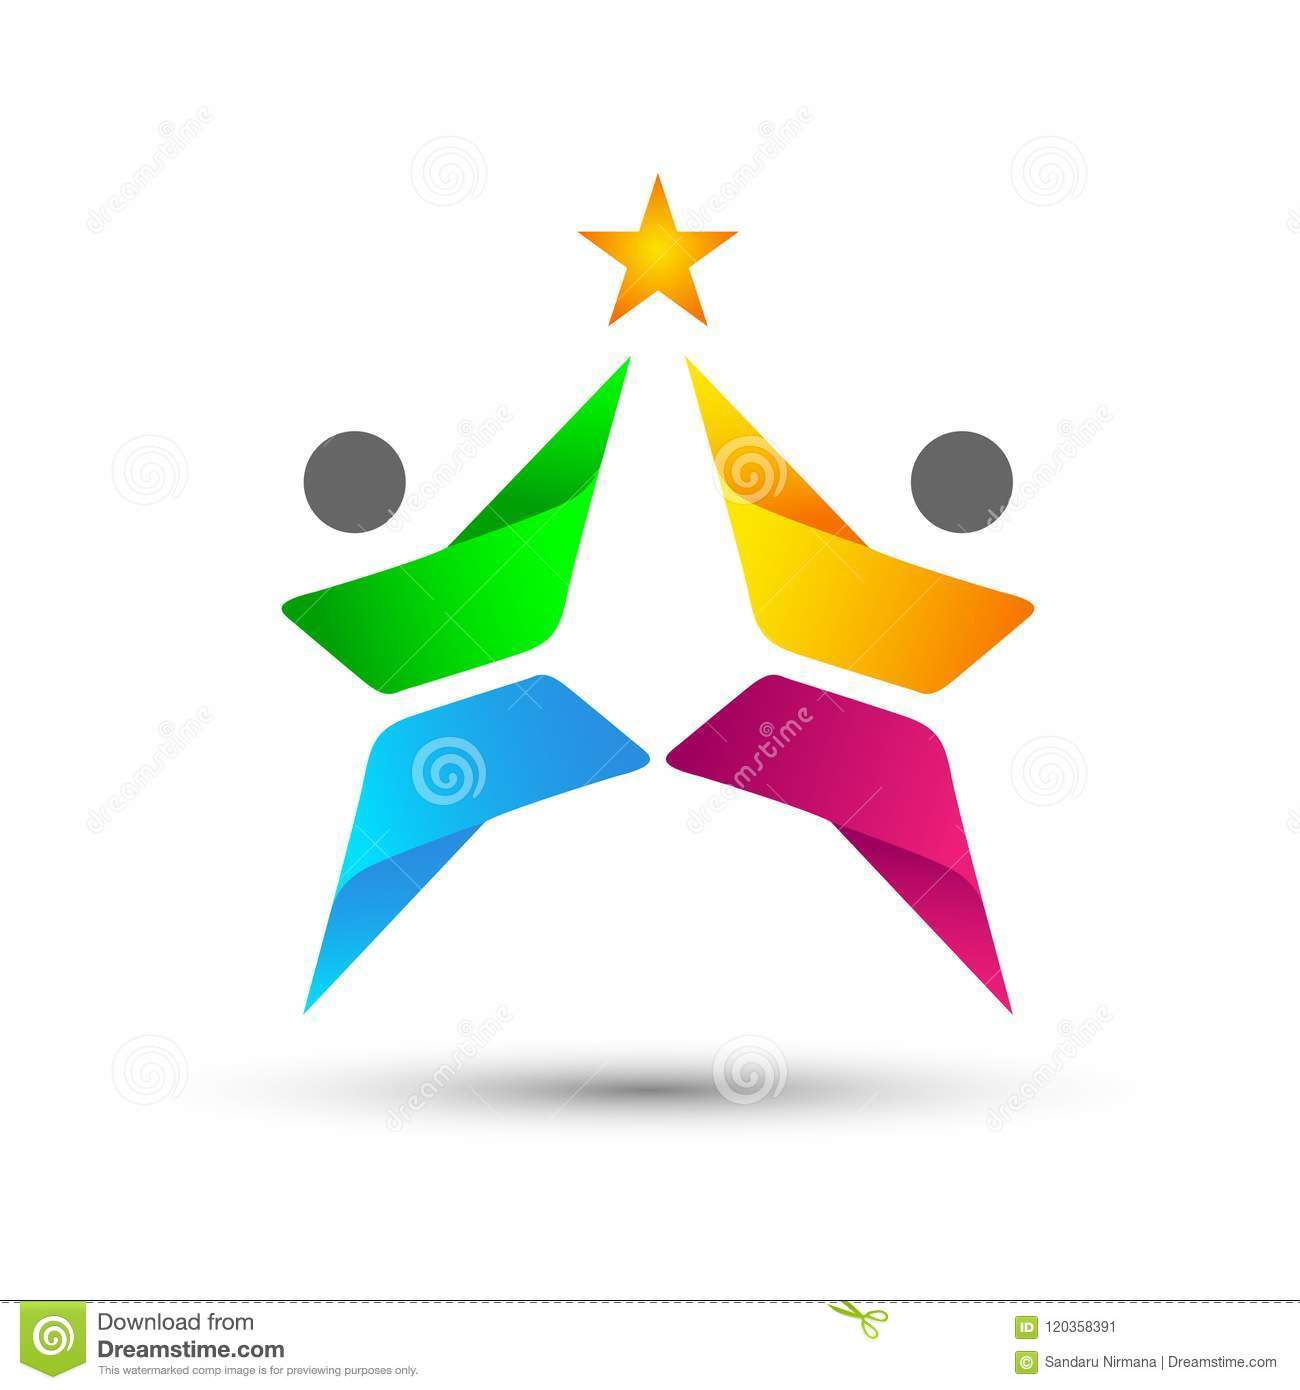 Abstract People Union Celebration Logo on Corporate Invested Business successful logo. Financial Investment Logo concept icon